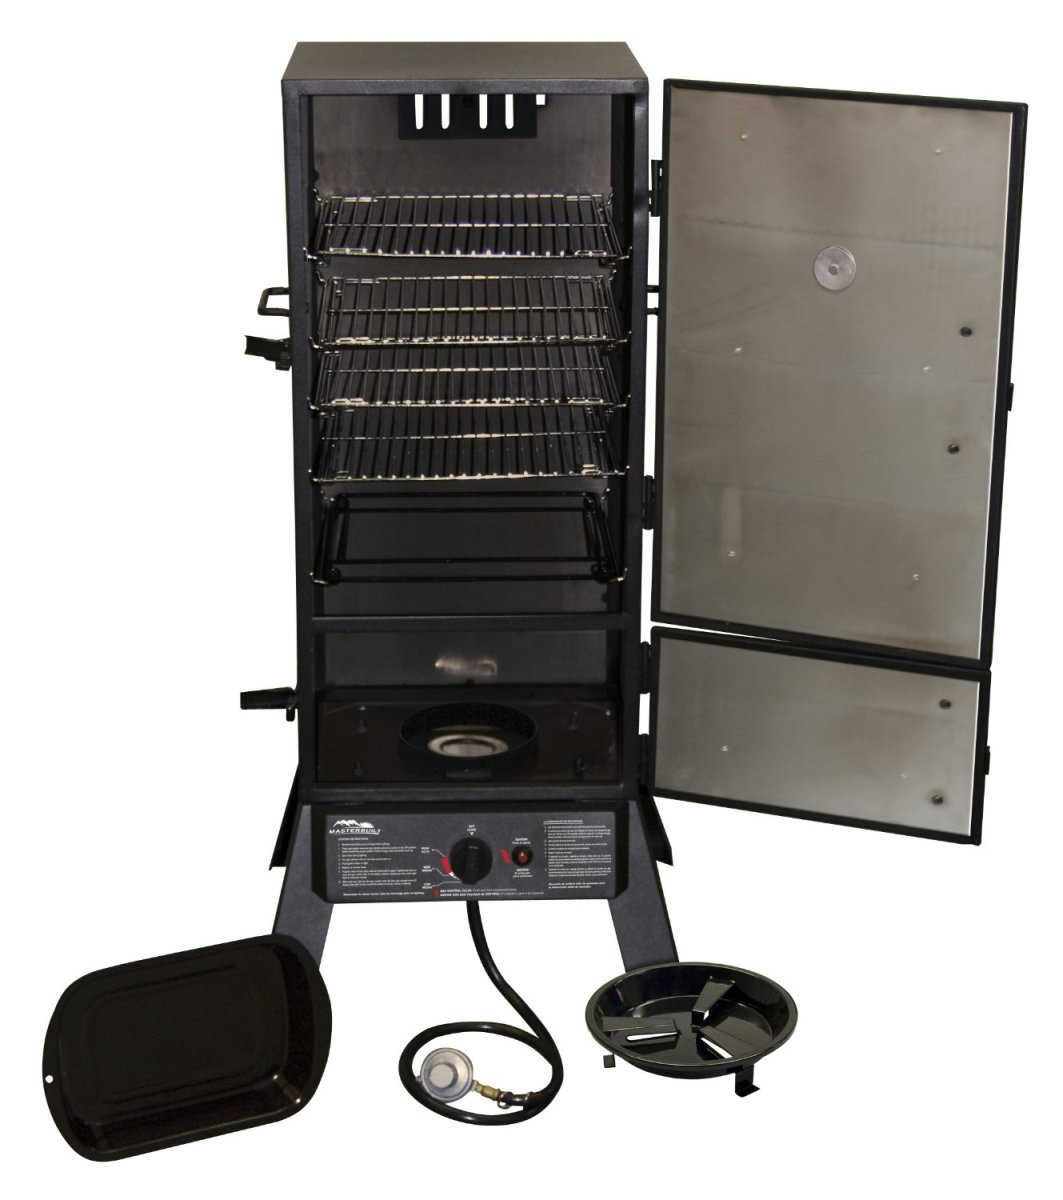 Vertical propane smoker grill from Masterbuilt.